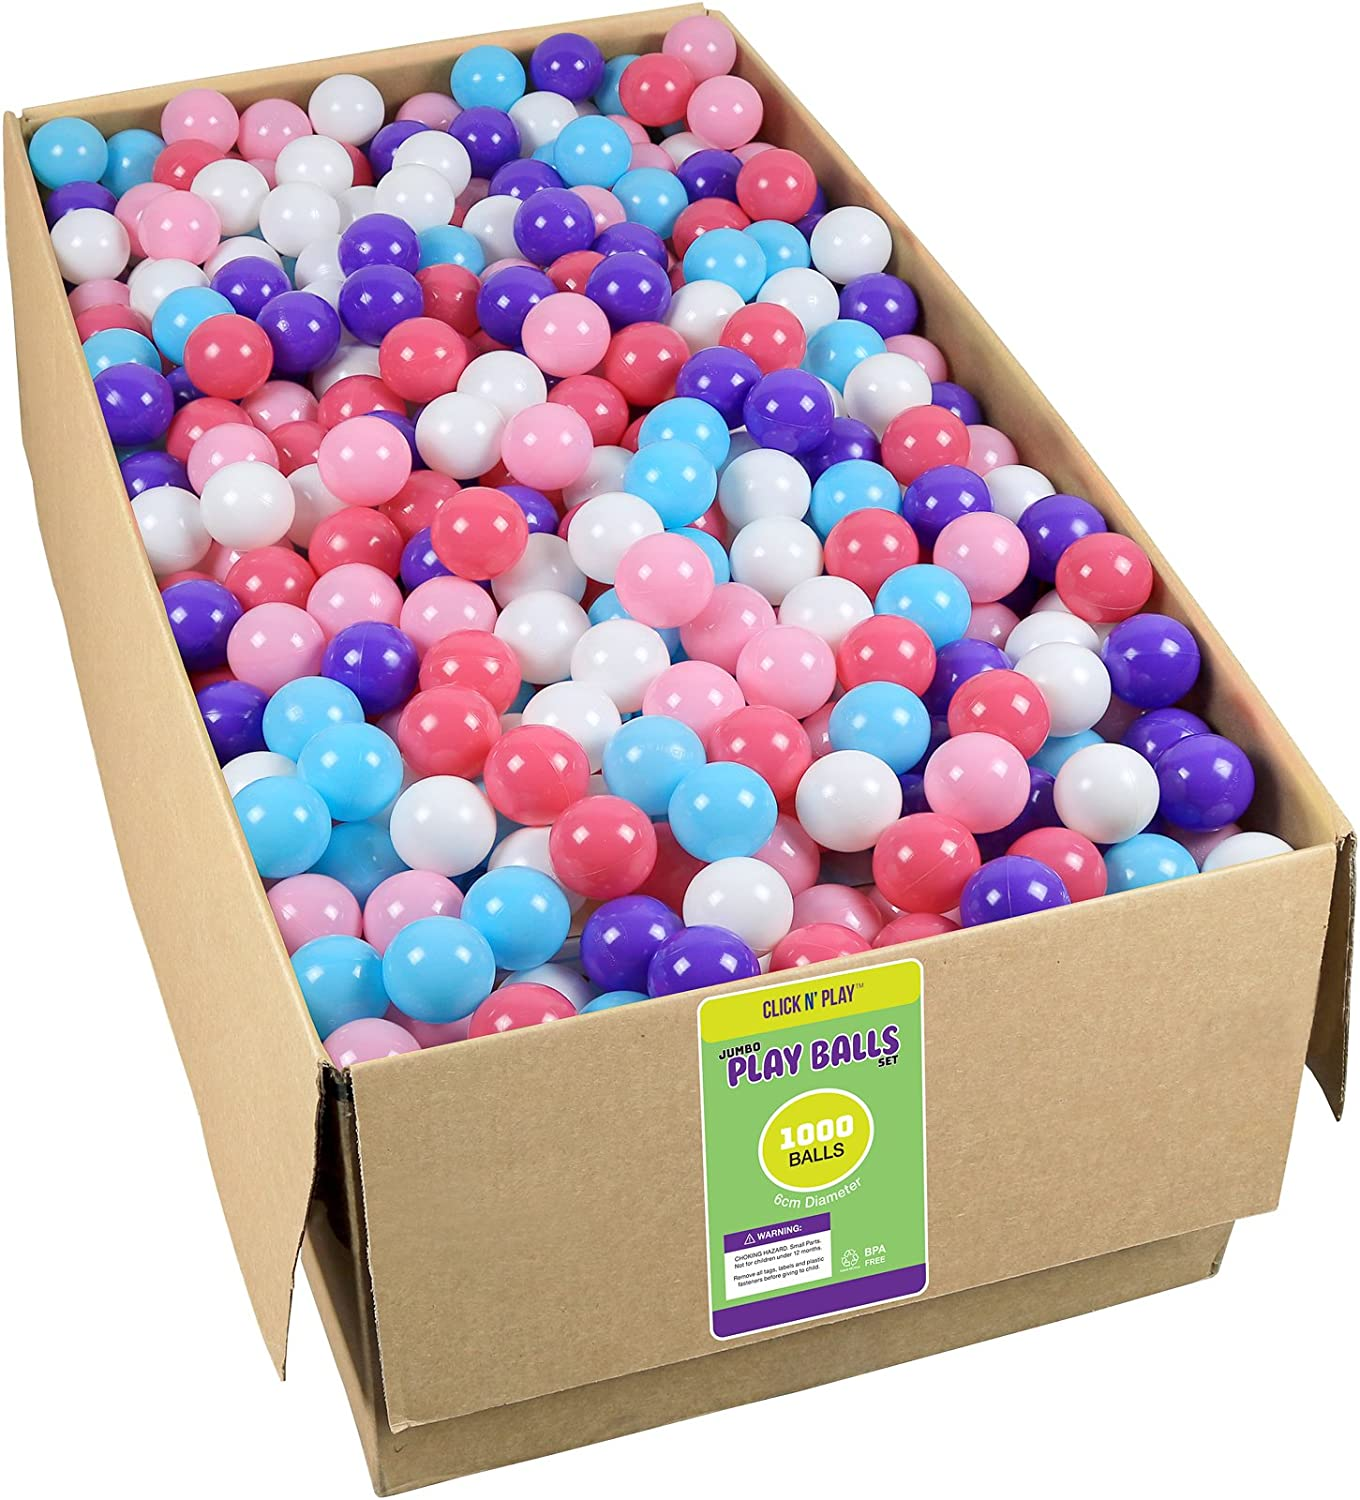 Click N' Play Value Pack of 400 Crush Proof Plastic Play Balls, Phthalate Free BPA Free, 5 Pretty Feminine Colors in Reusable and Durable Mesh Storage Bag with Zipper-Little Princess Edition Click N' Play CNP9705